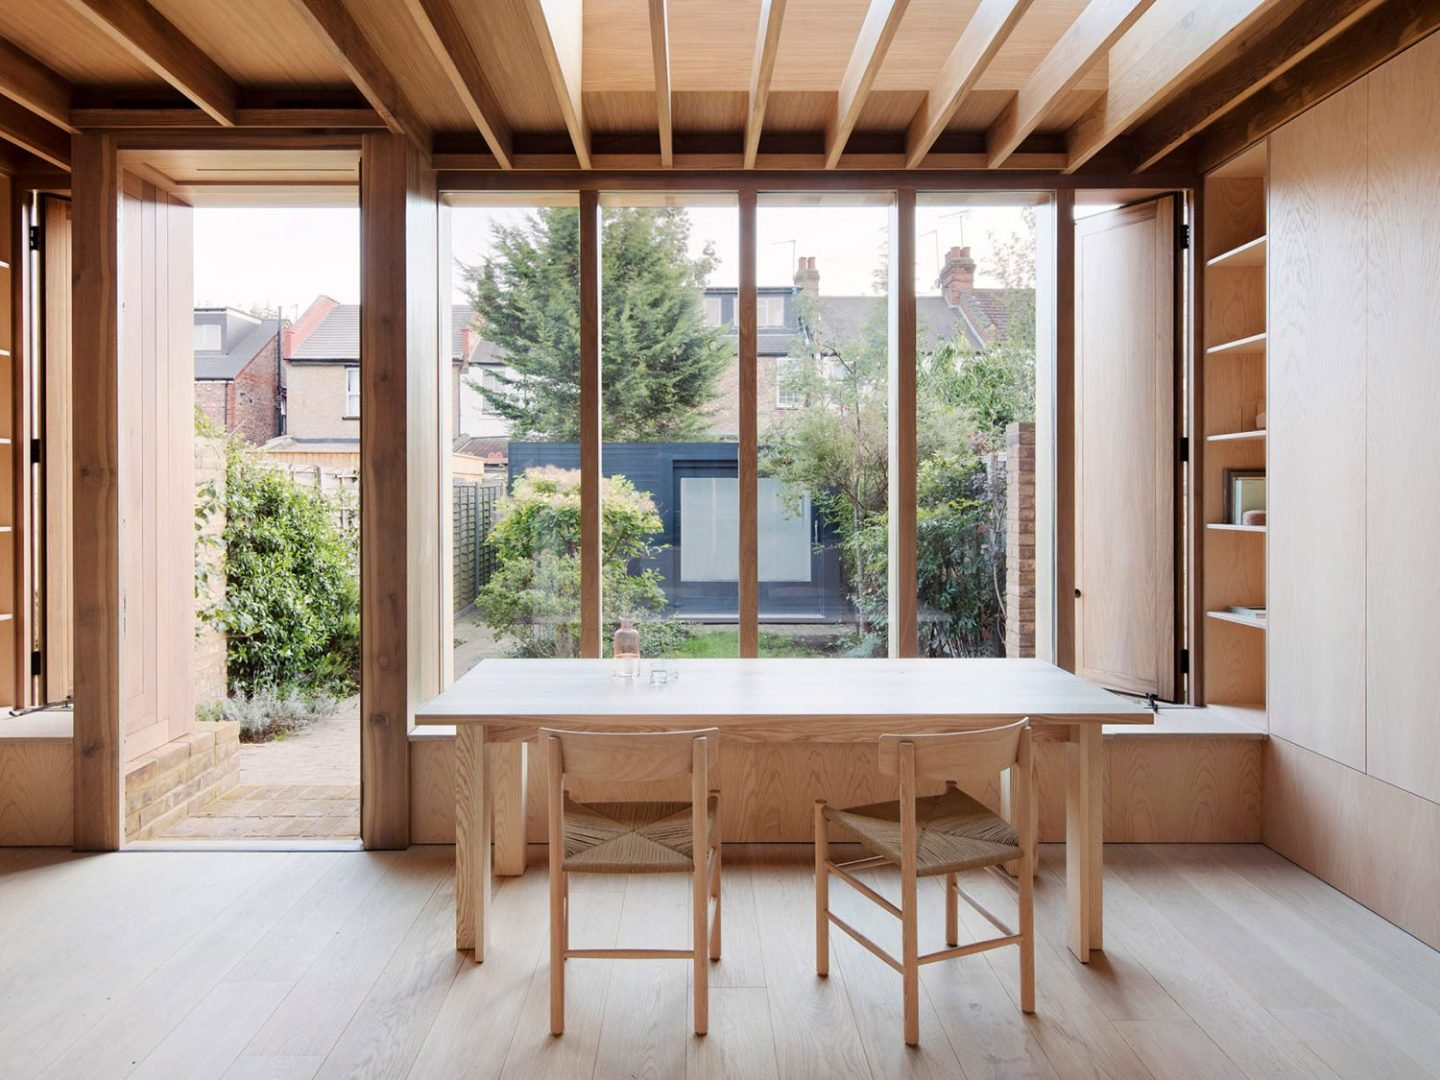 iGNANT-Architecture-O'Sullivan-Skoufoglou-Architects-Extension-London-2